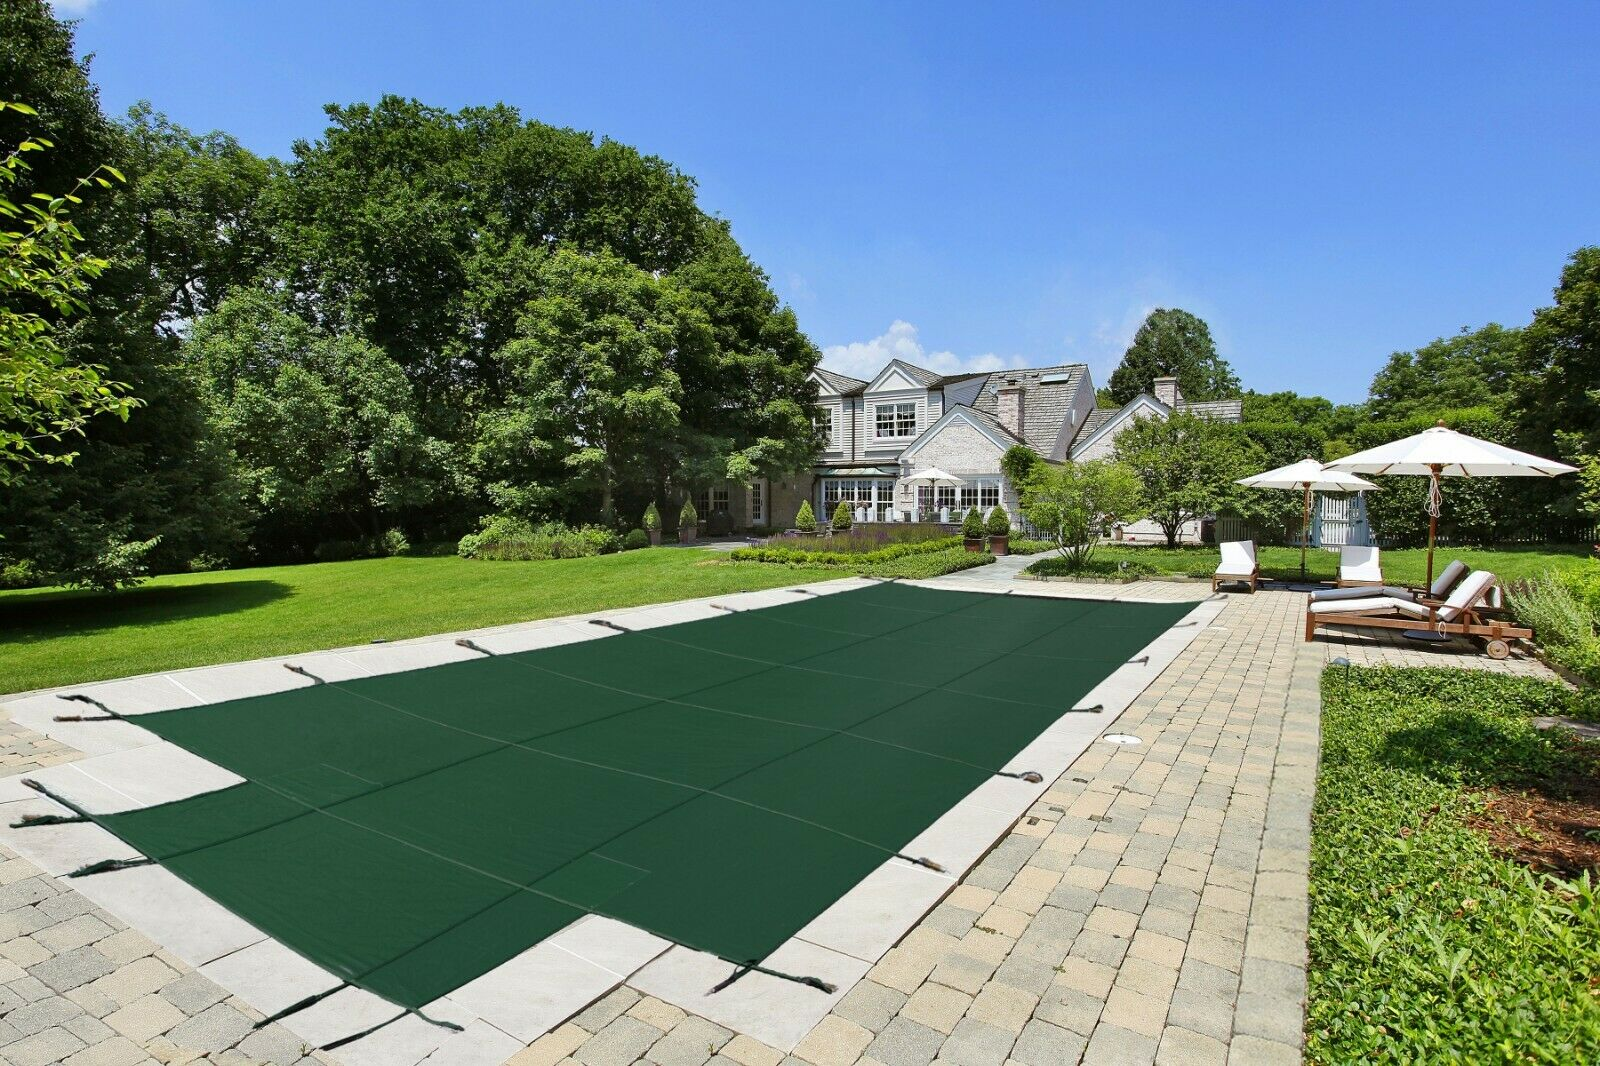 LinerWorld – Above Ground Winter Pool Cover All Sizes & Colors, Round & Oval Home & Garden